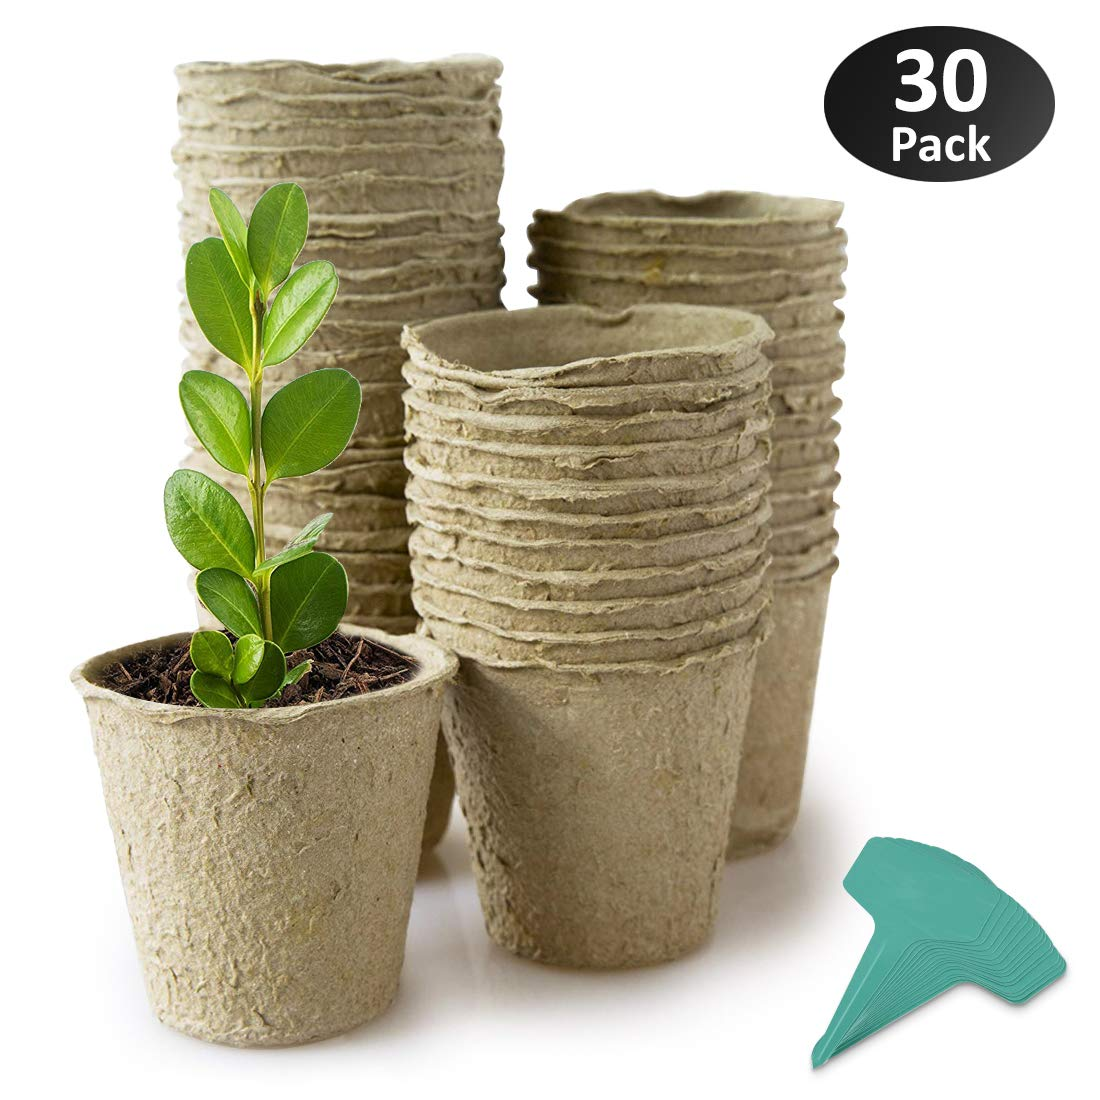 GROWNEER 30 Packs 4 Inches Peat Pots Plant Starters for Seedling, Biodegradable Herb Seed Starter Pots Kit, Garden Germination Nursery Pots with 15 Pcs Plant Labels by GROWNEER